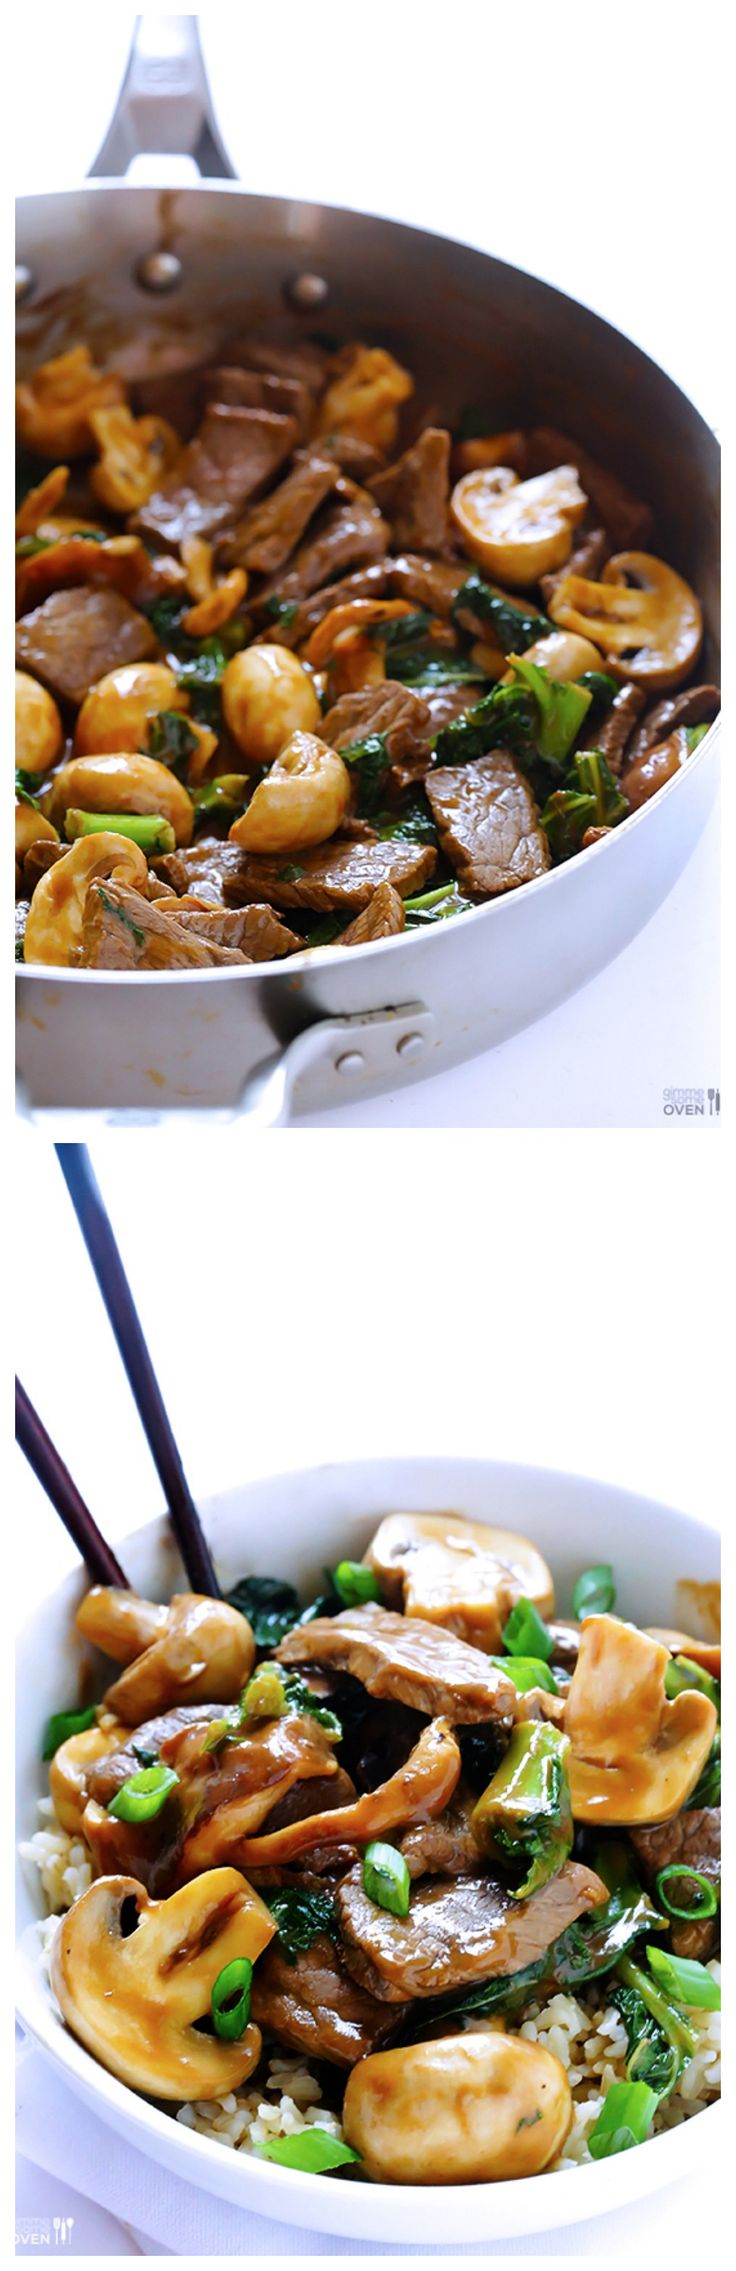 #Recipe: Ginger #Beef, Mushroom and #Kale Stir Fry